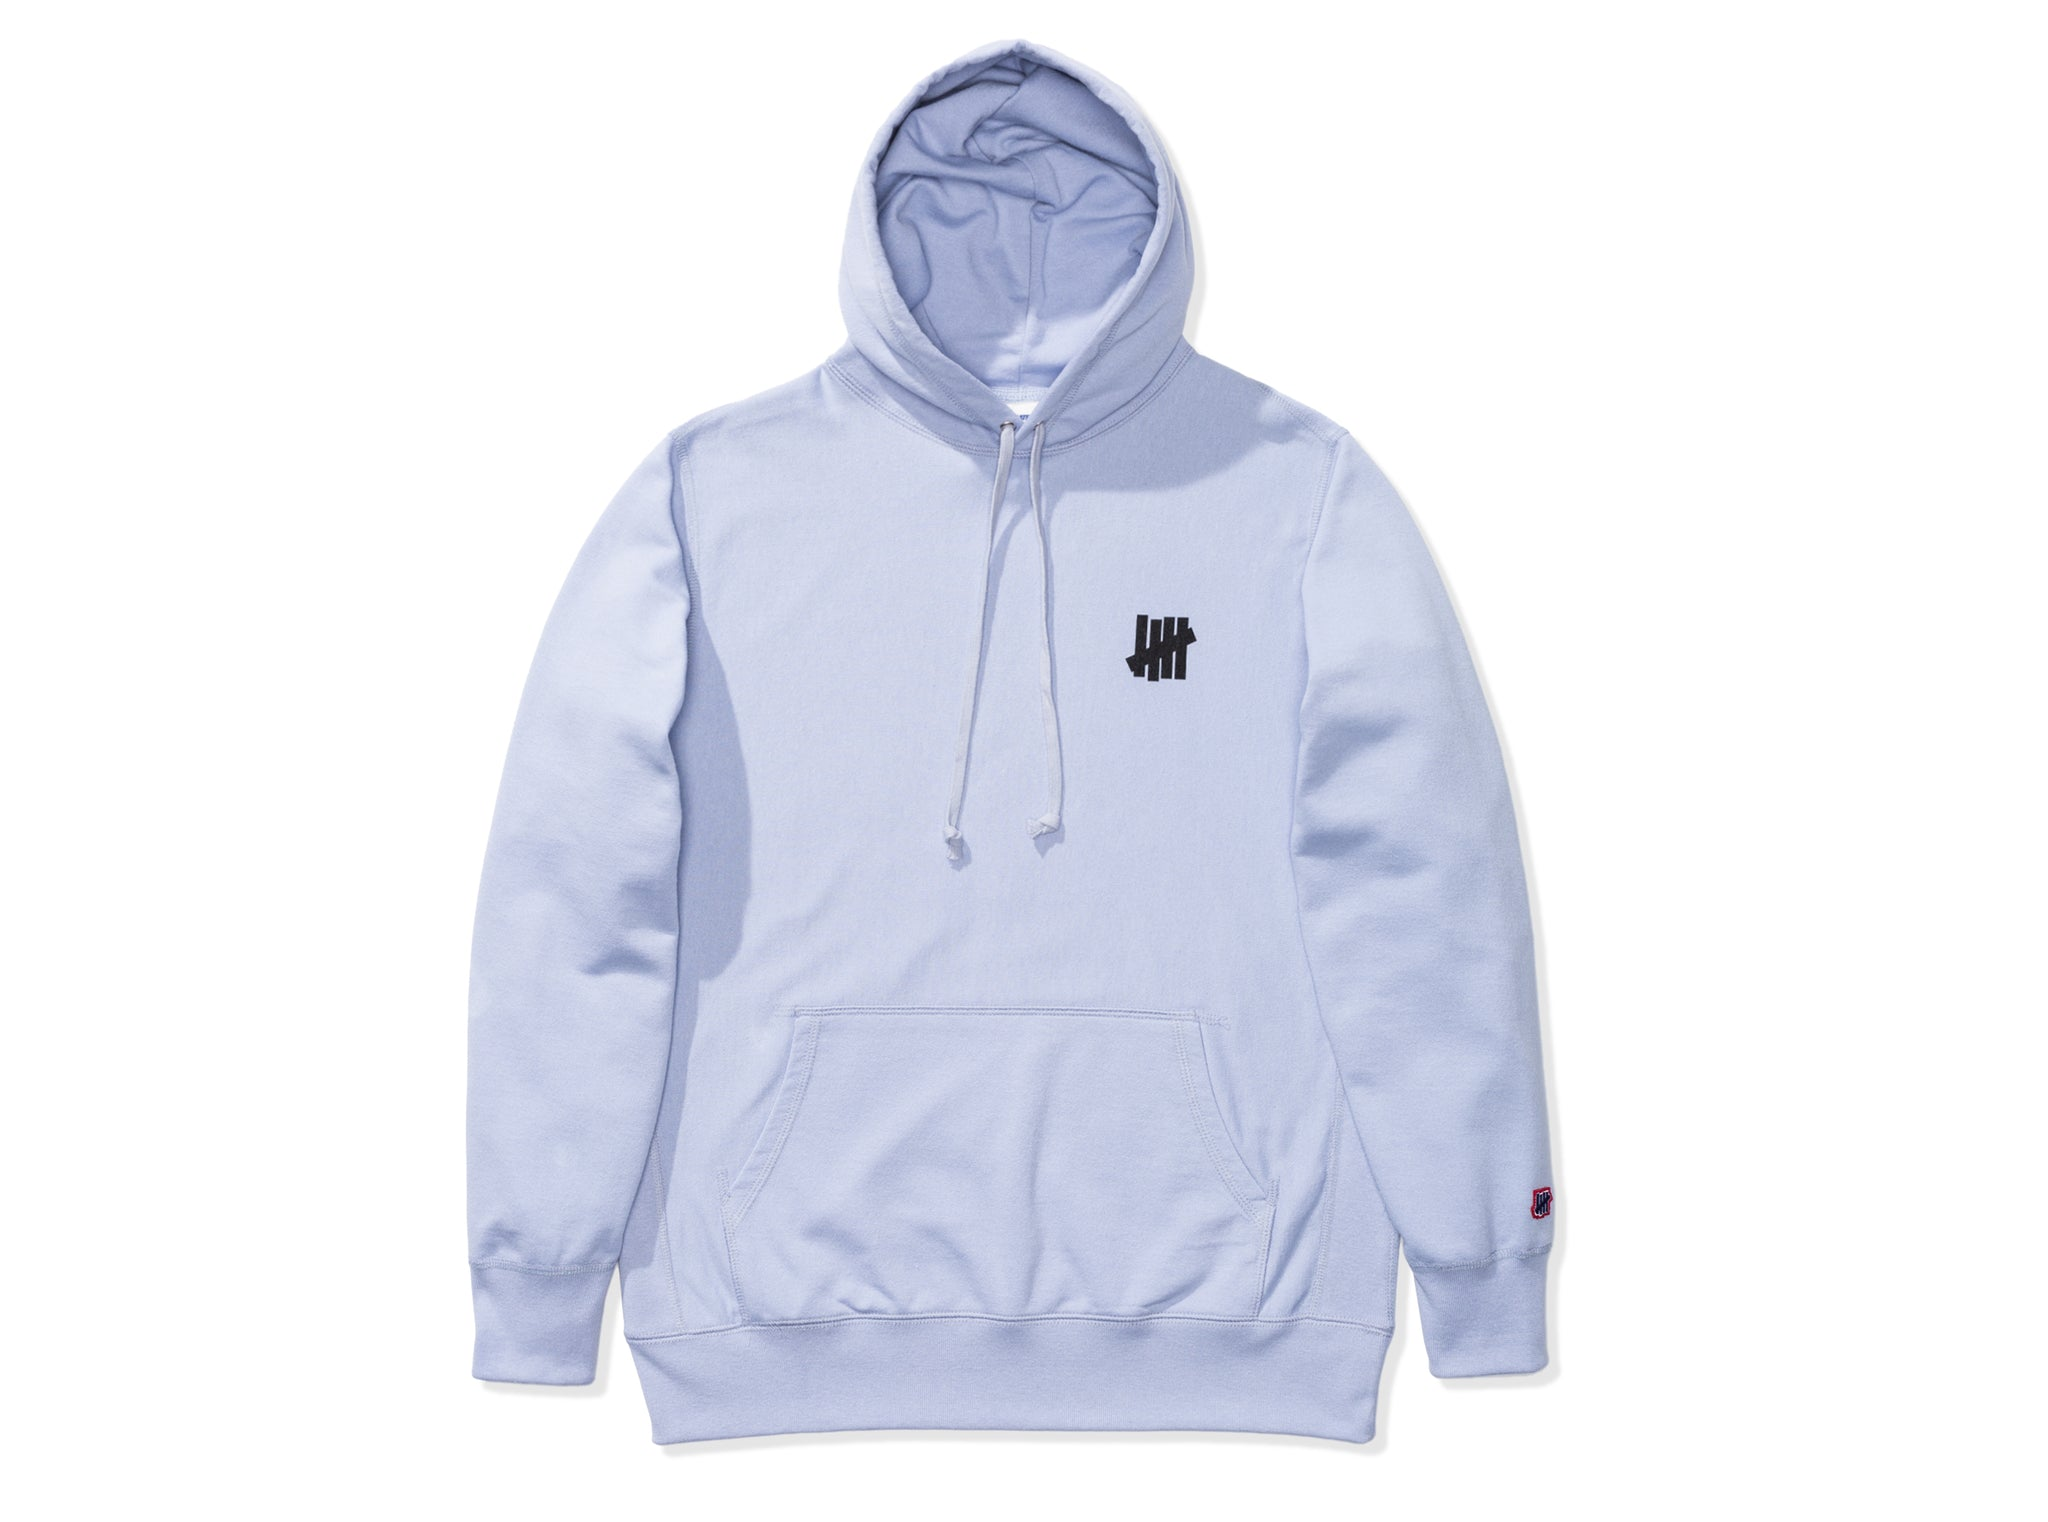 UNDEFEATED ICON PULLOVER HOODIE